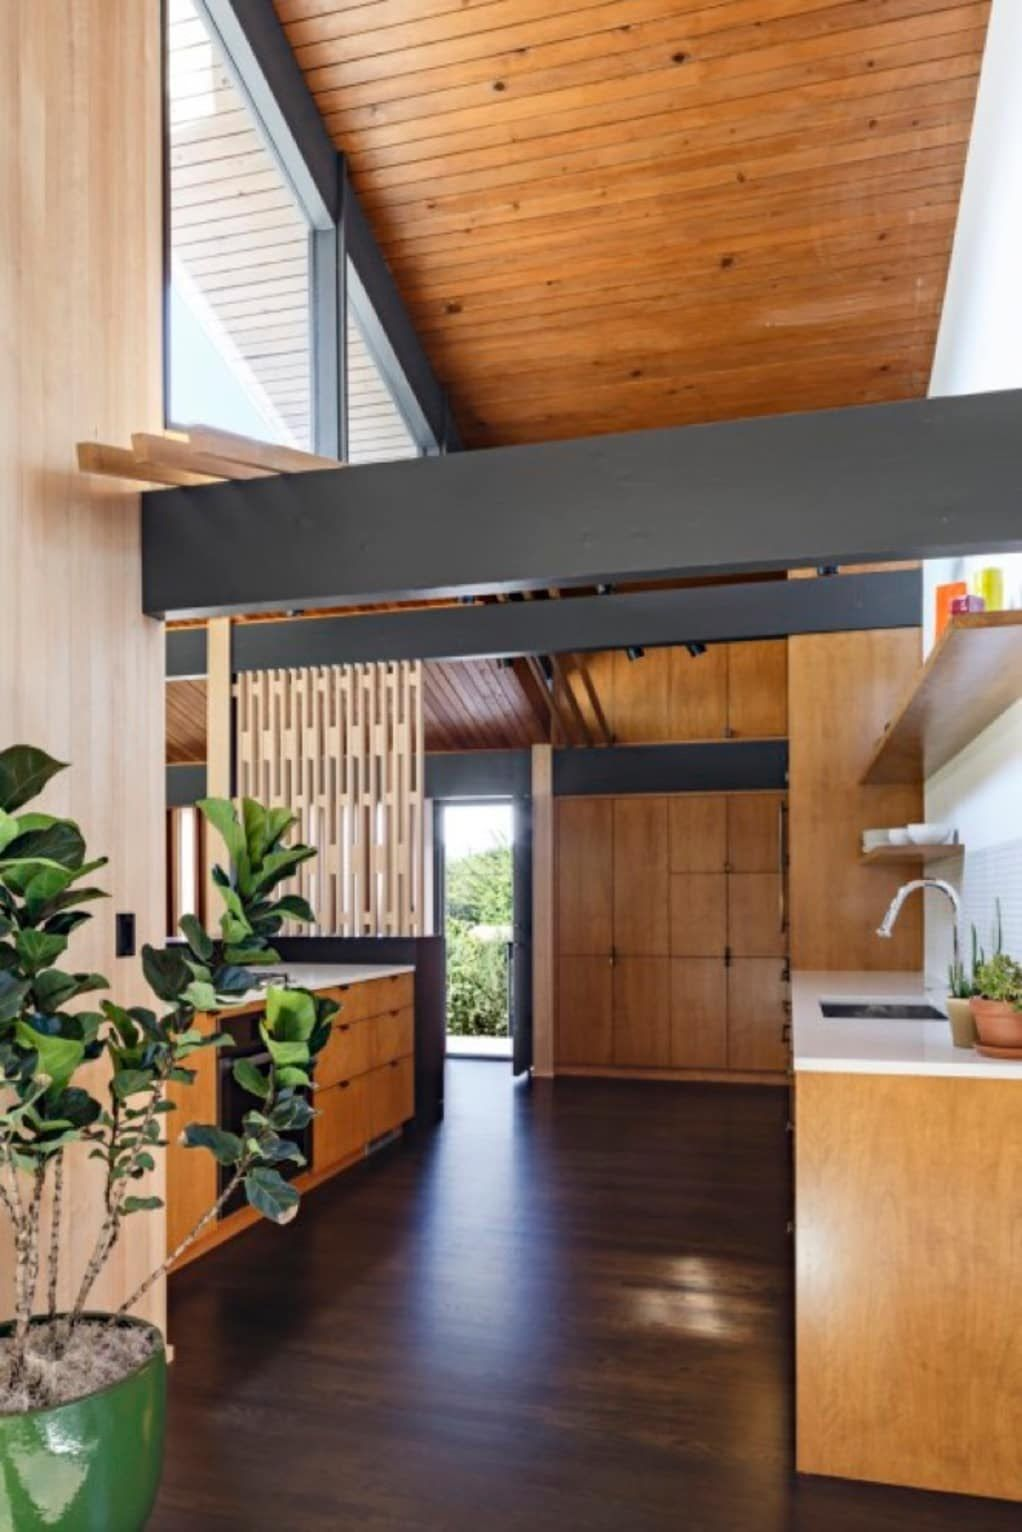 14 Photos Of A Flawlessly Cool Mid-Century Modern Home ...